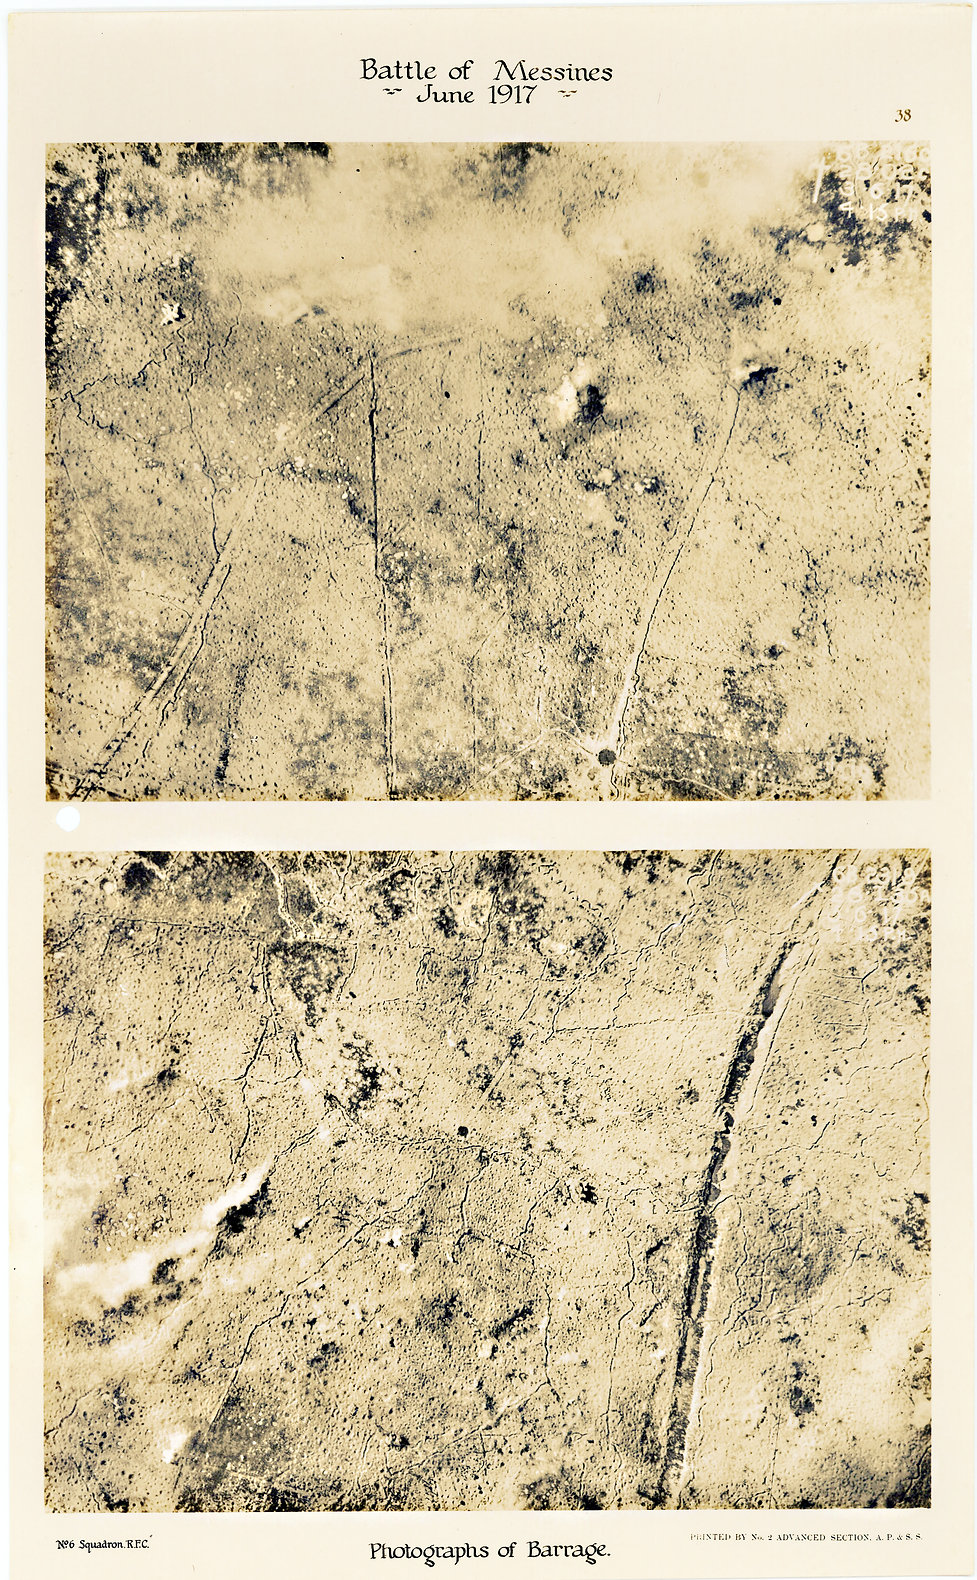 6 Squadron aerial photos of pre-bombardment barrage at Hill 60 taken by 6 Squadron immediately prior to the Battle of Messines, 1917